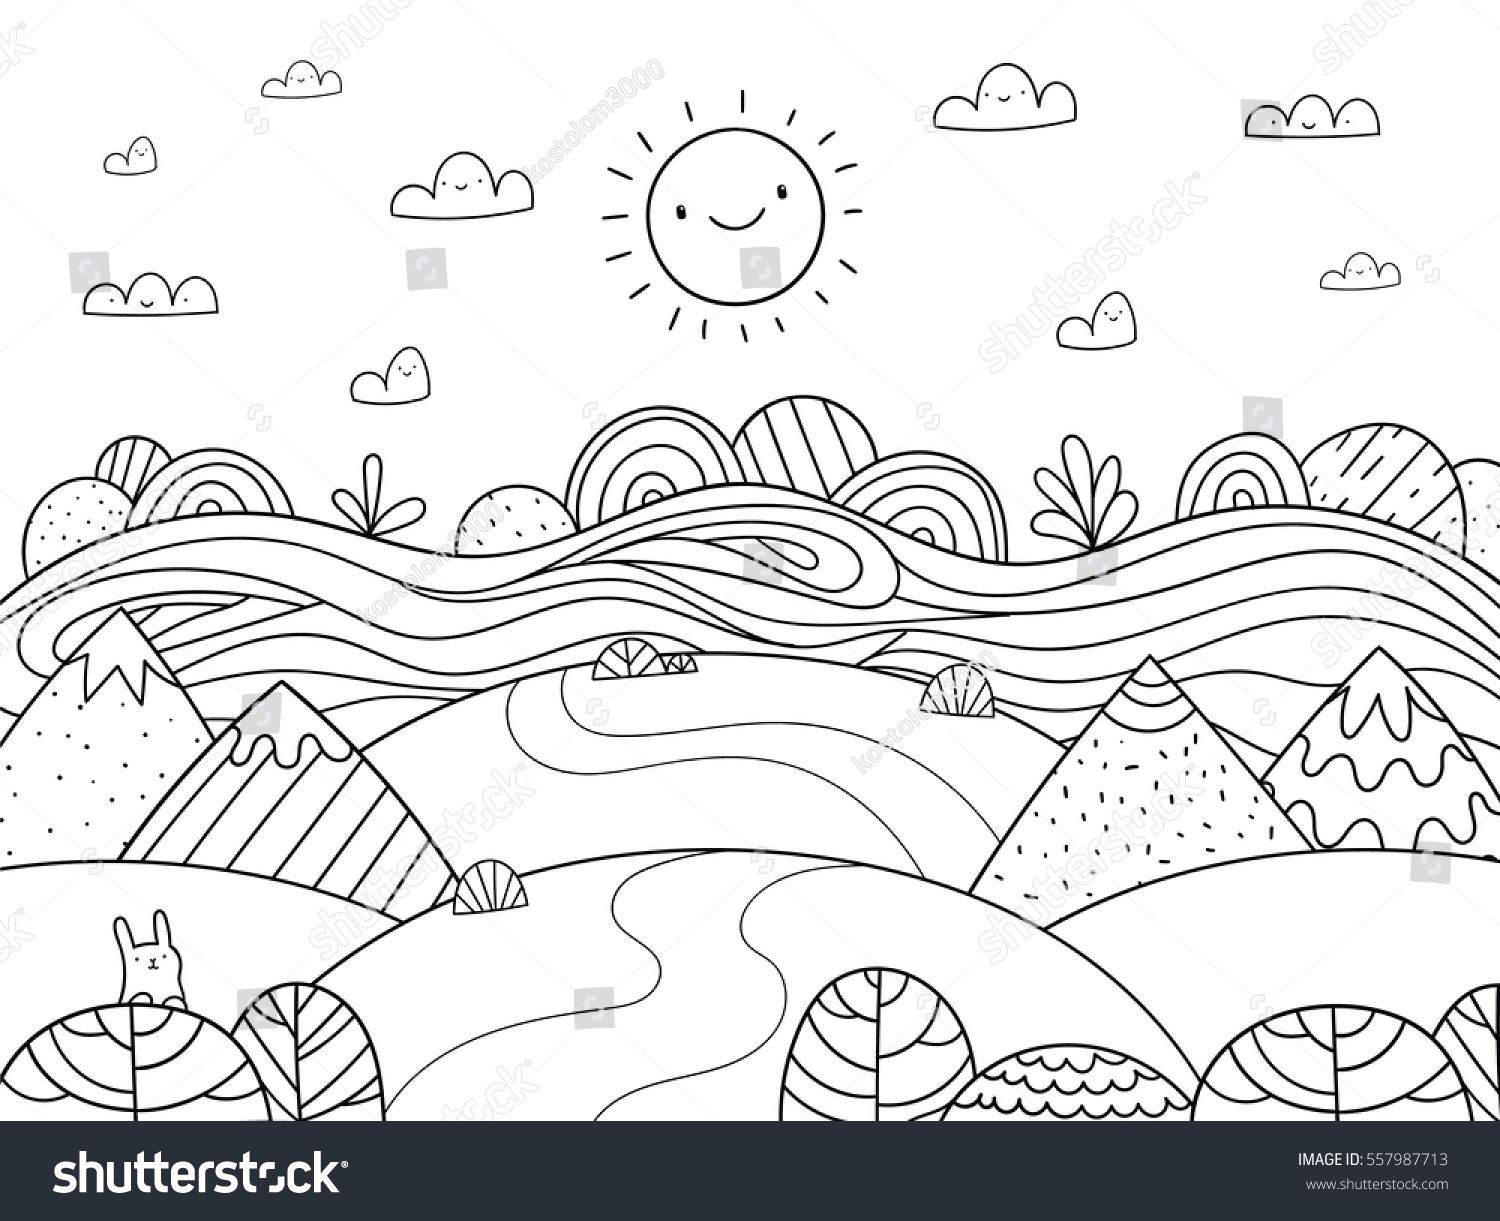 L29 Nile River Coloring Pages For Kids Nile River Coloring Pages For Kids Coloring Pages